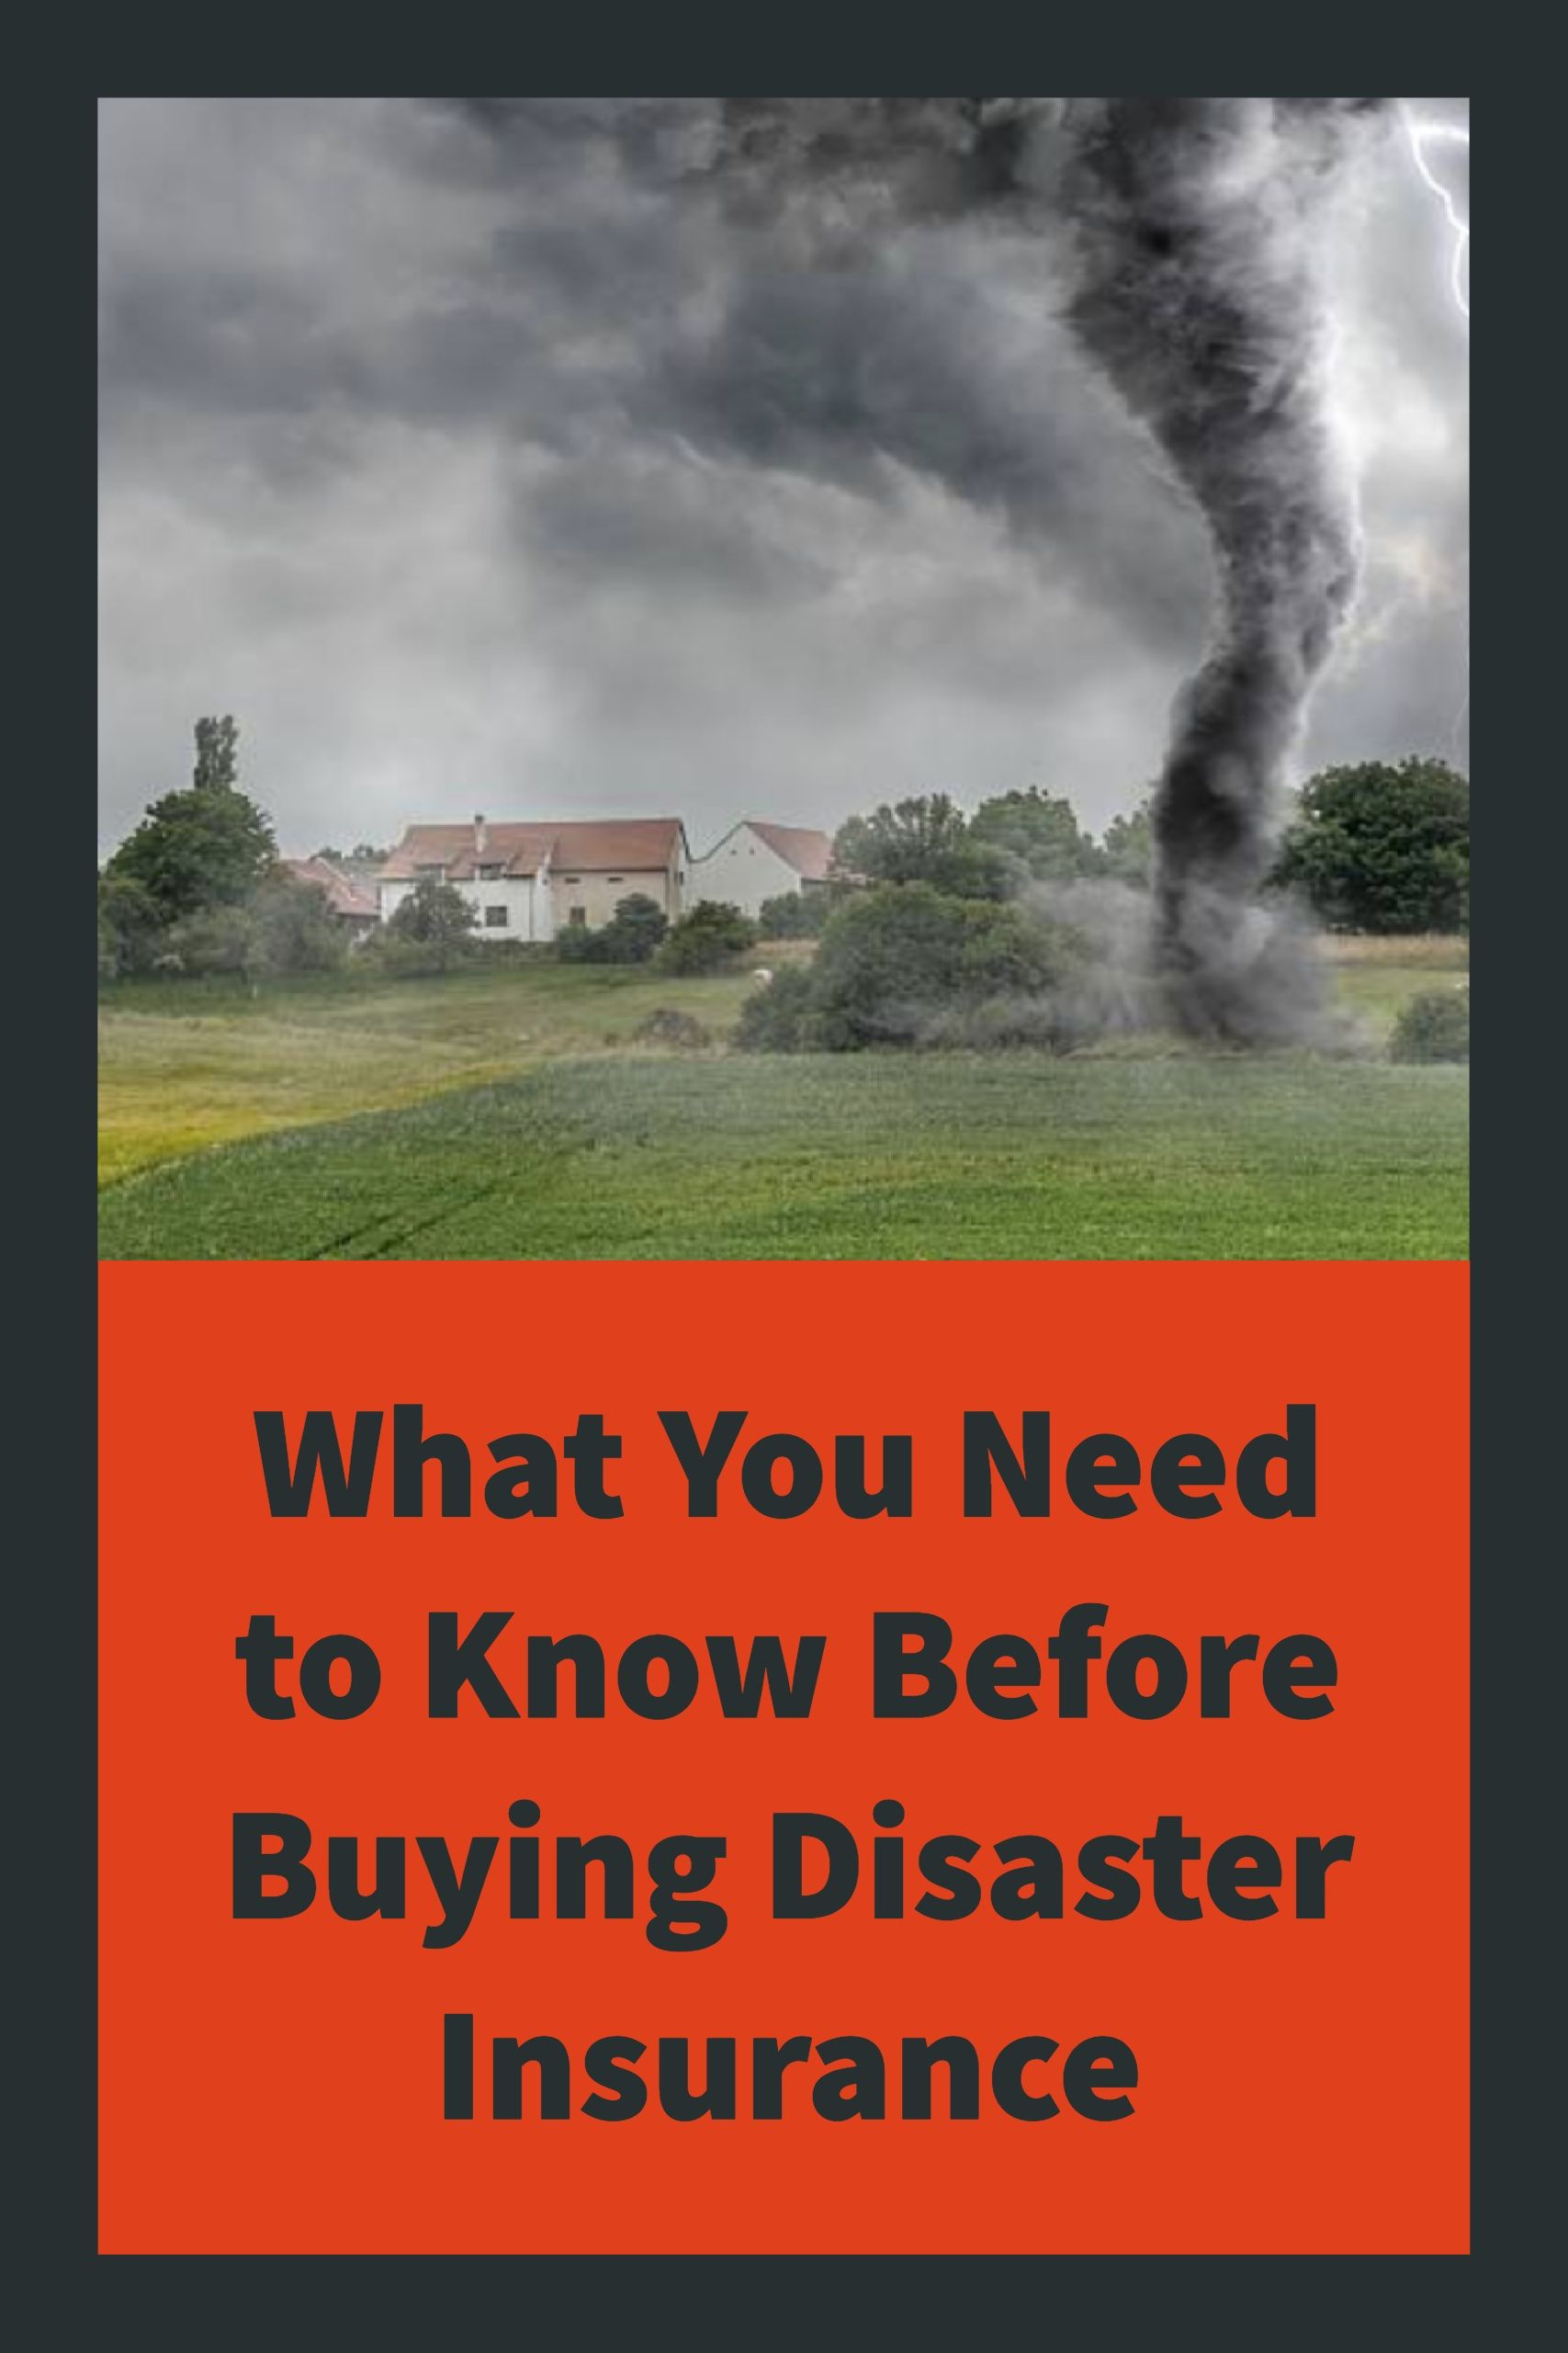 The Pros And Cons Of Disaster Insurance For Tornados Hurricanes